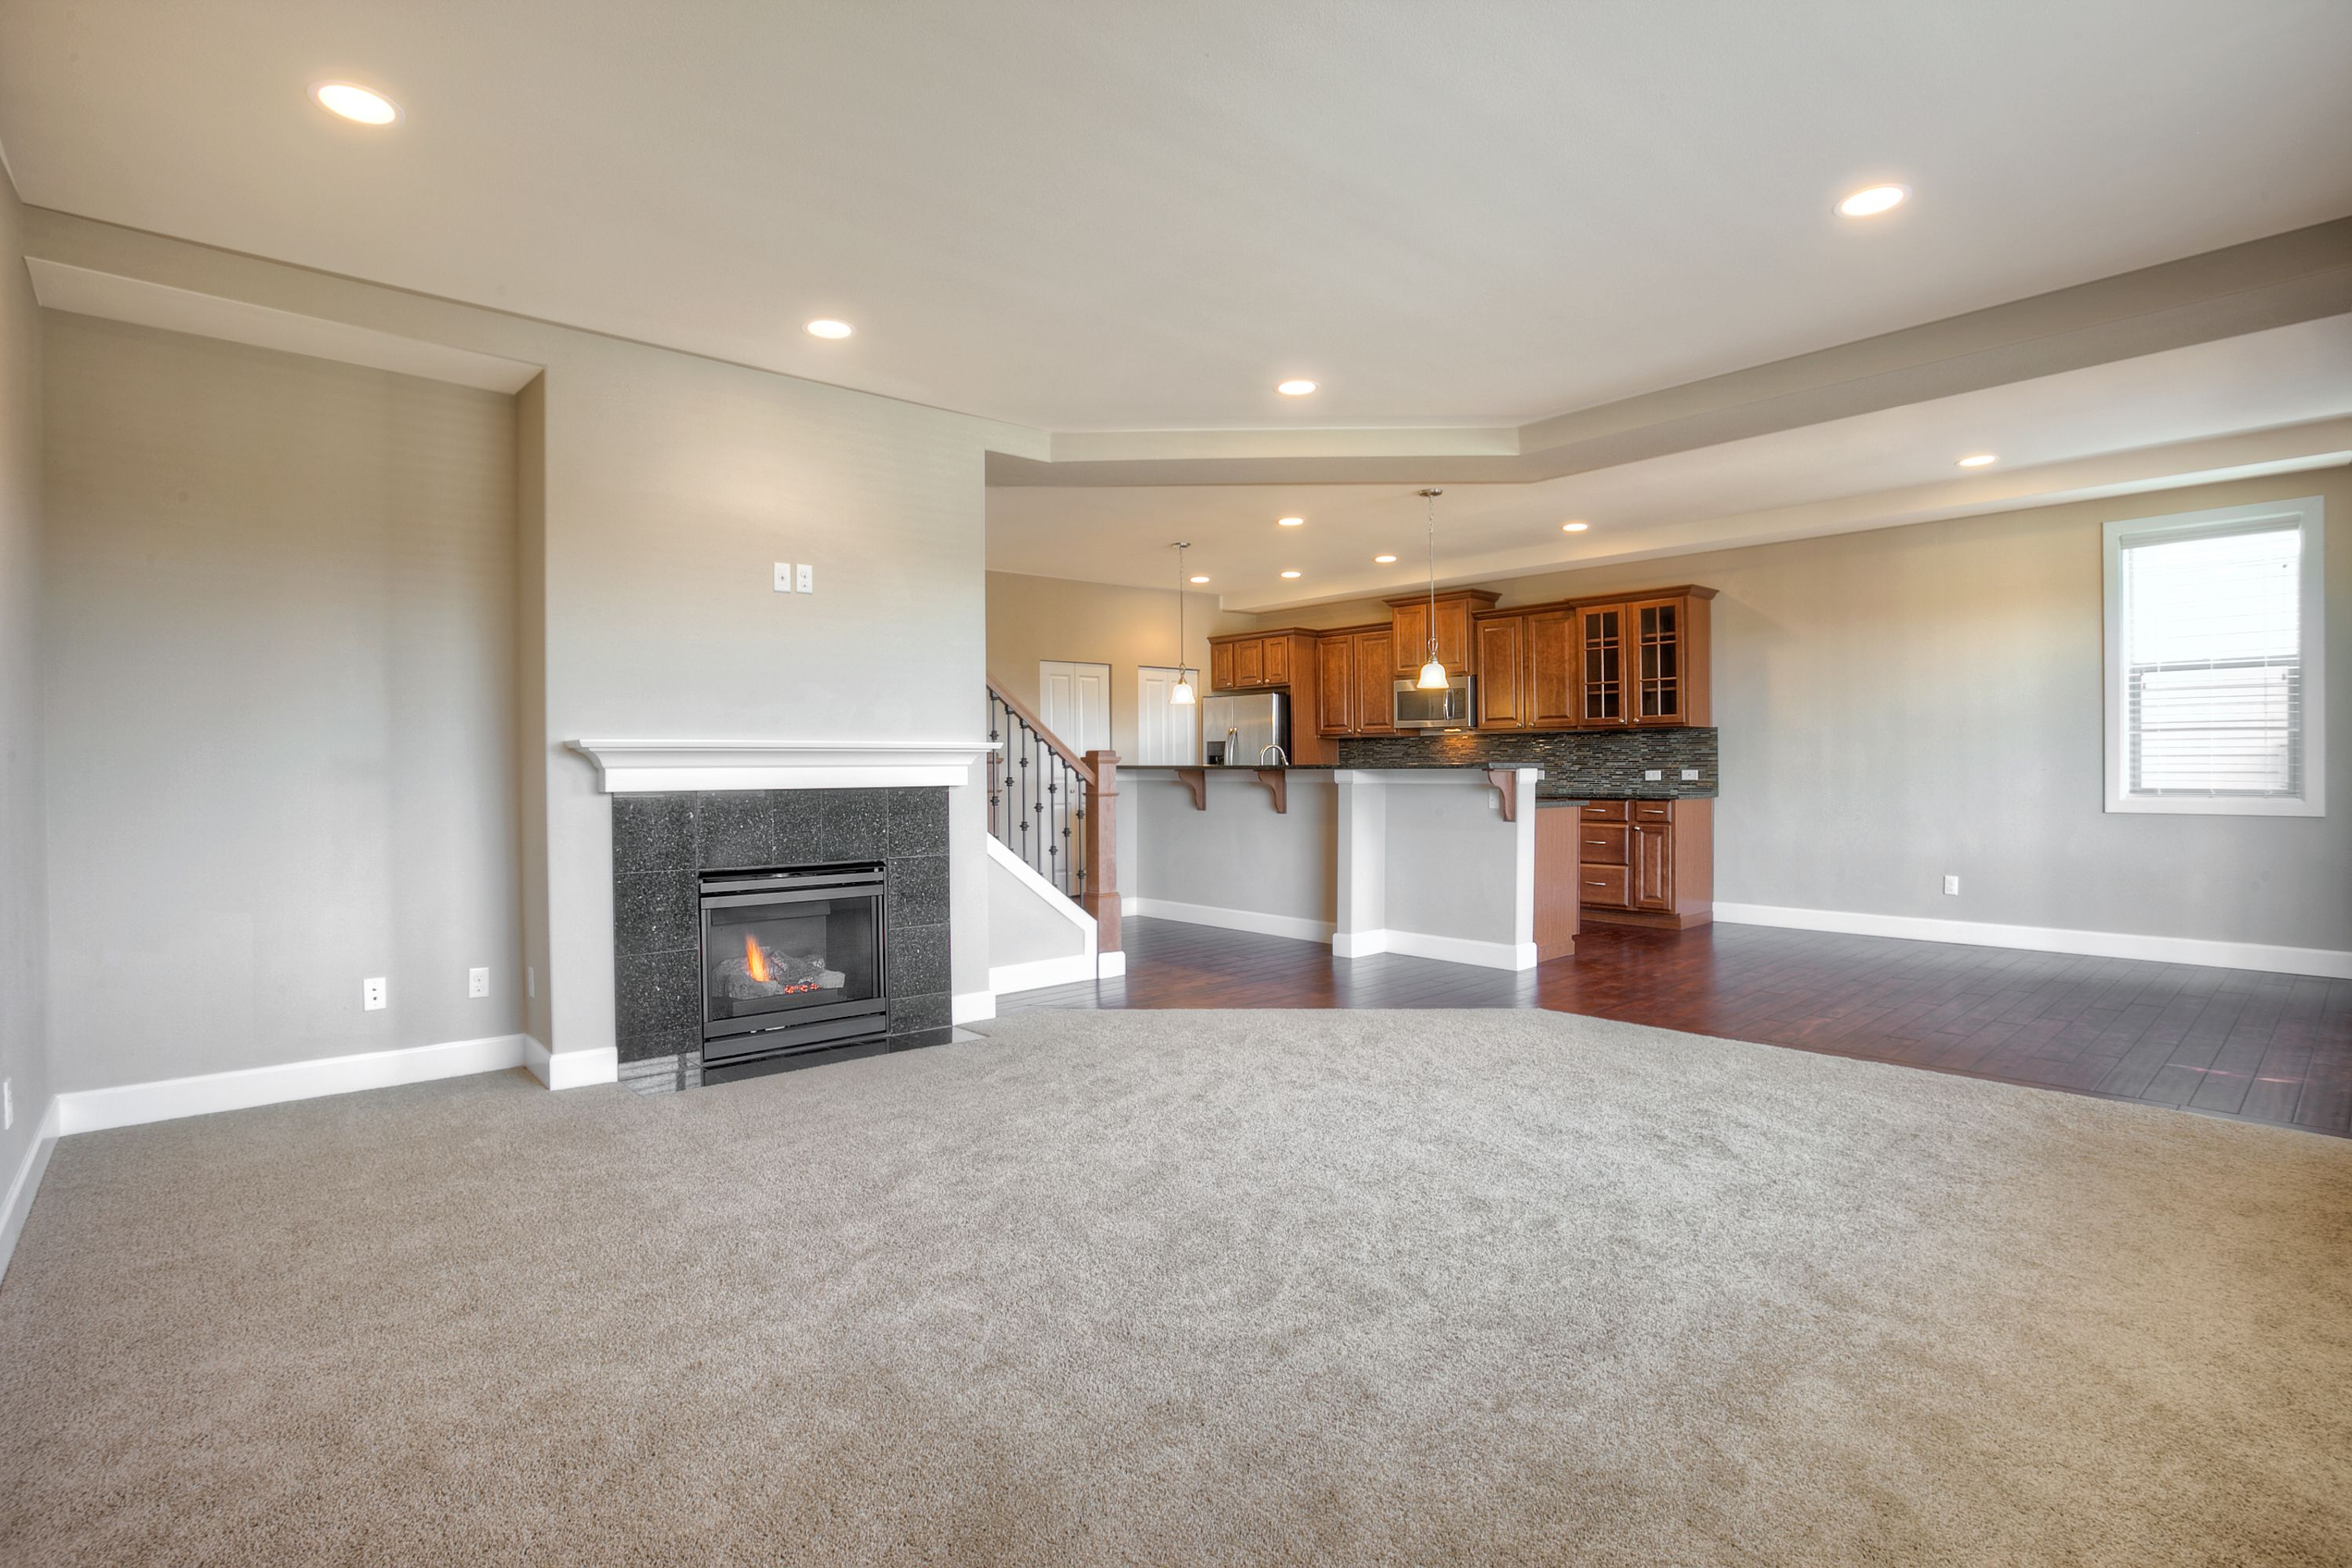 Gas Fireplace With Tile Surround And Mantle Beautiful Mohawk Carpets And Recessed Lighting New Homes For Sale New Homes Lennar